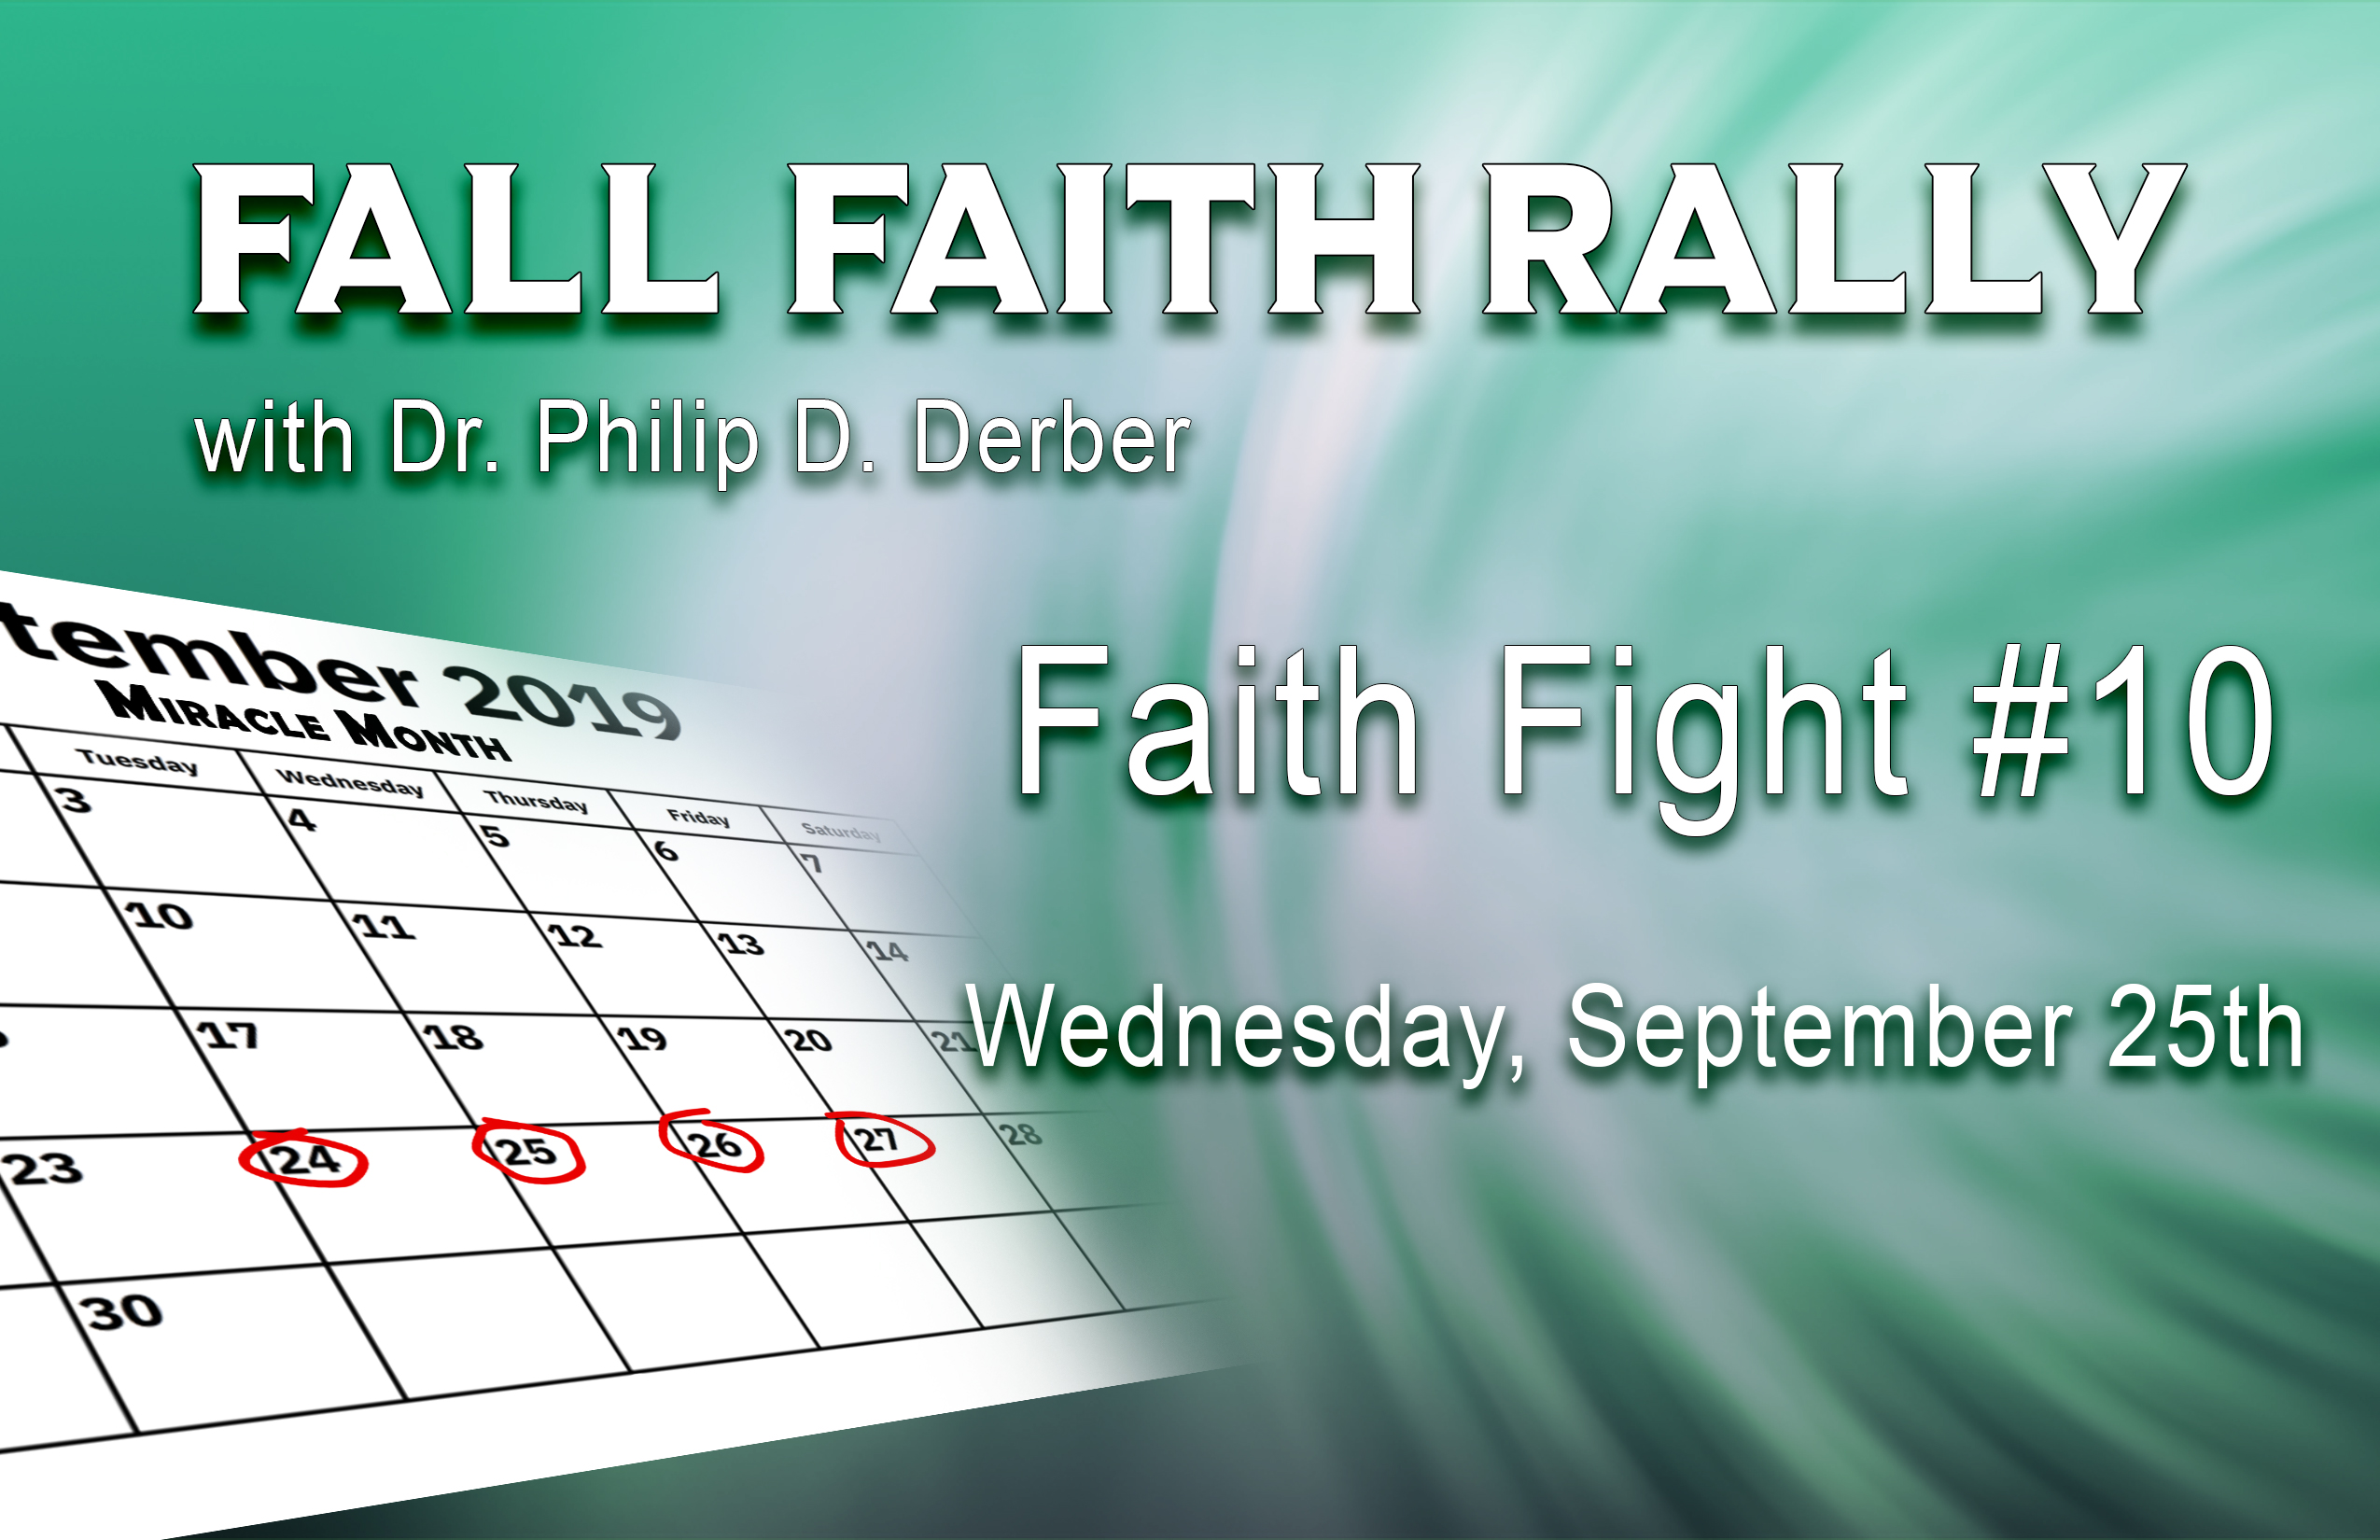 Faith Fight 10